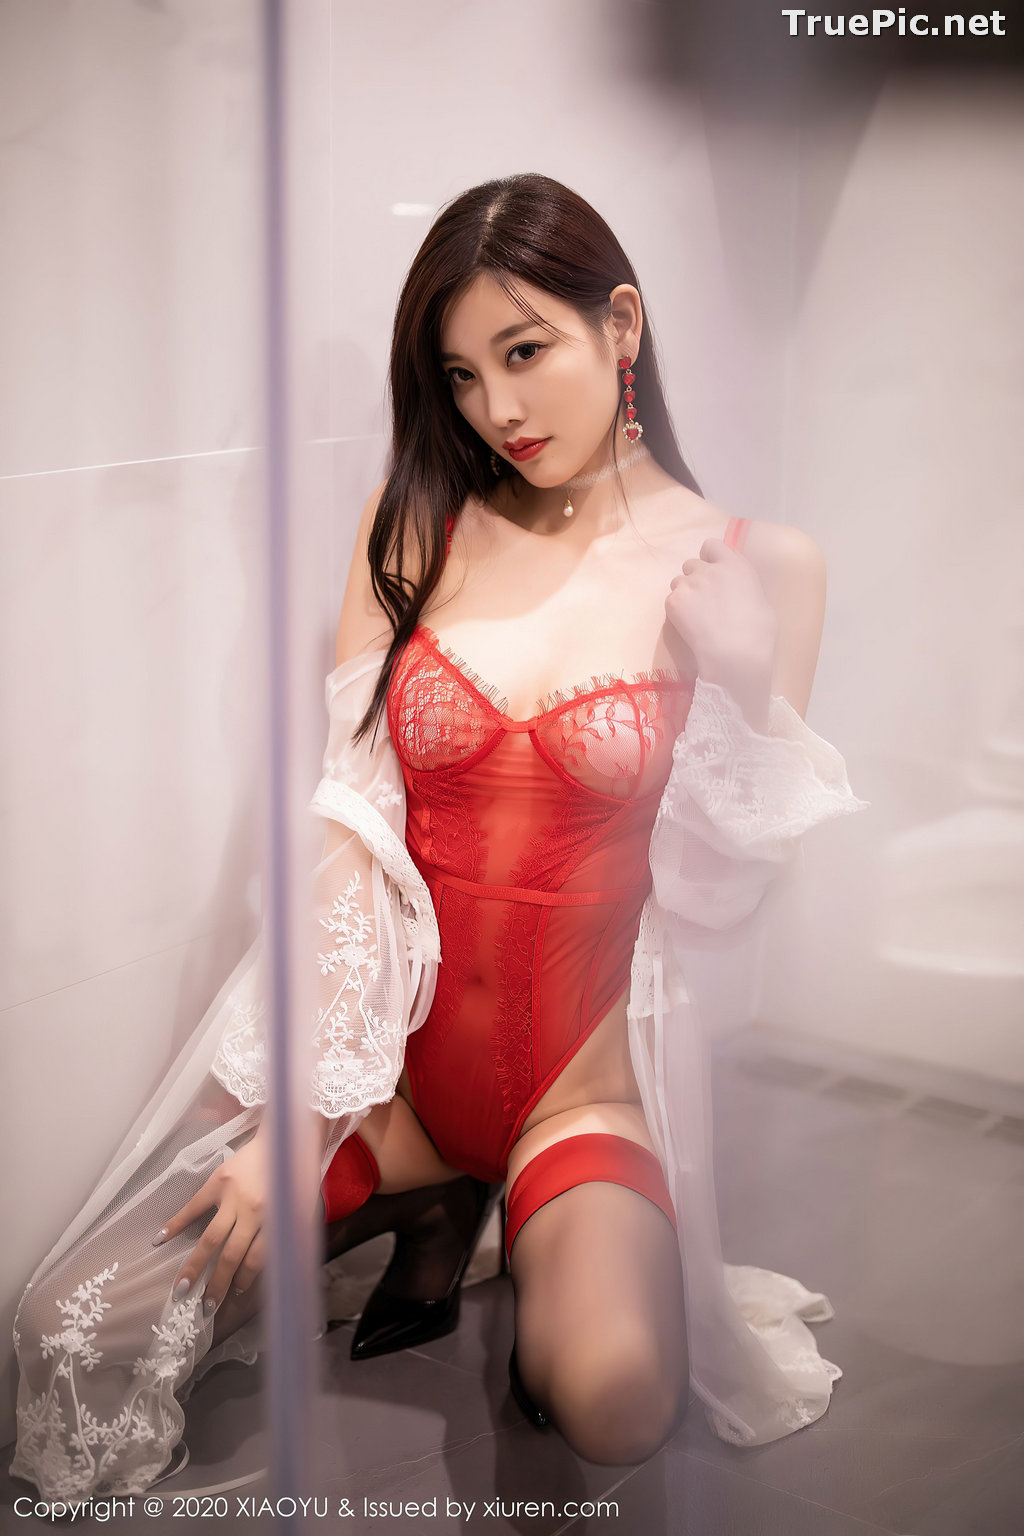 Image XiaoYu Vol.413 - Chinese Model - Yang Chen Chen (杨晨晨sugar)- Red Crystal-clear Lingerie - TruePic.net - Picture-9